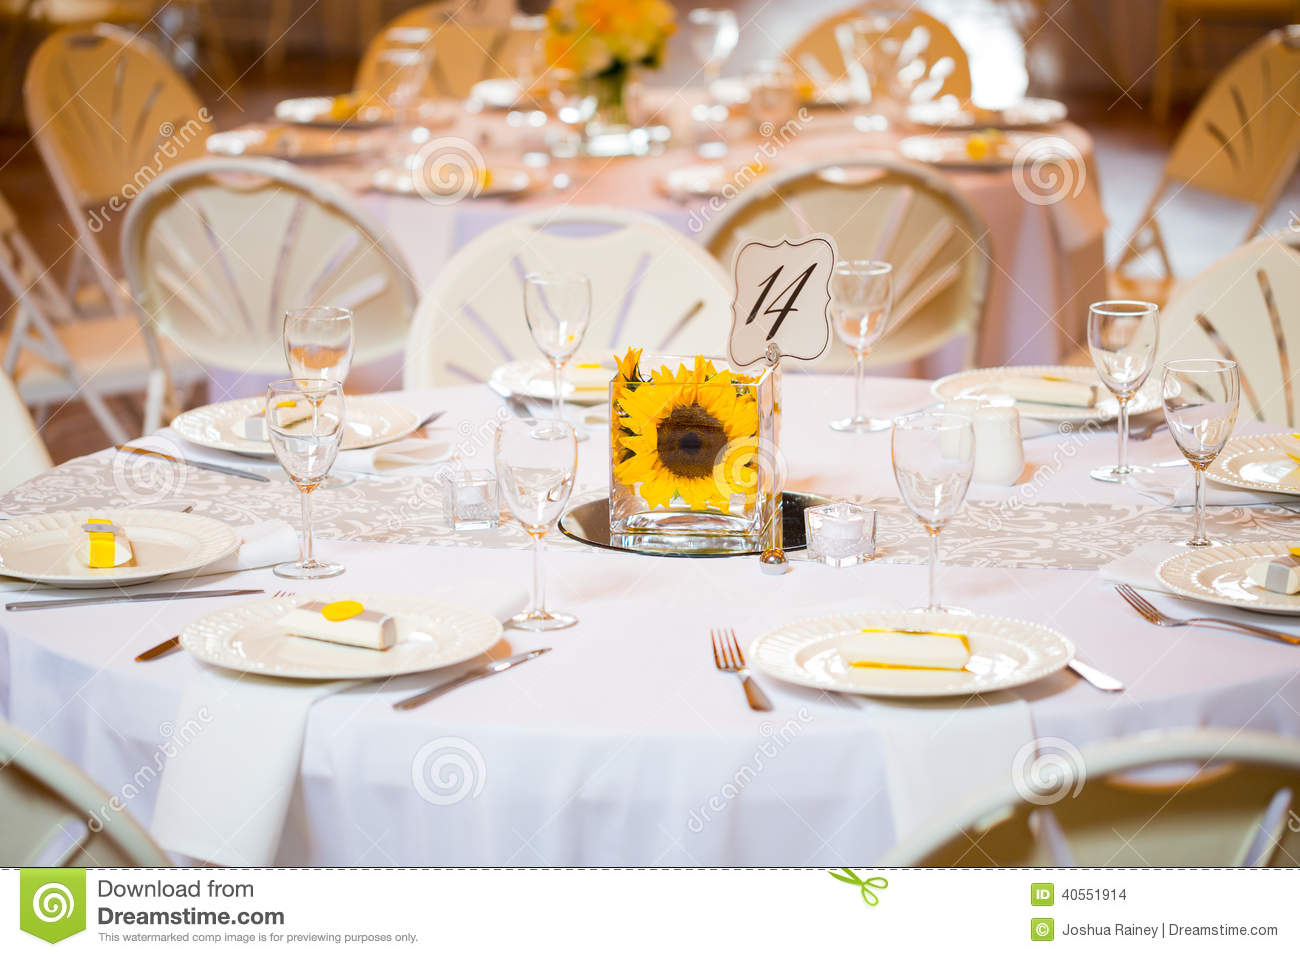 Wedding table centerpieces with flowers stock photo for Glass tables for wedding reception